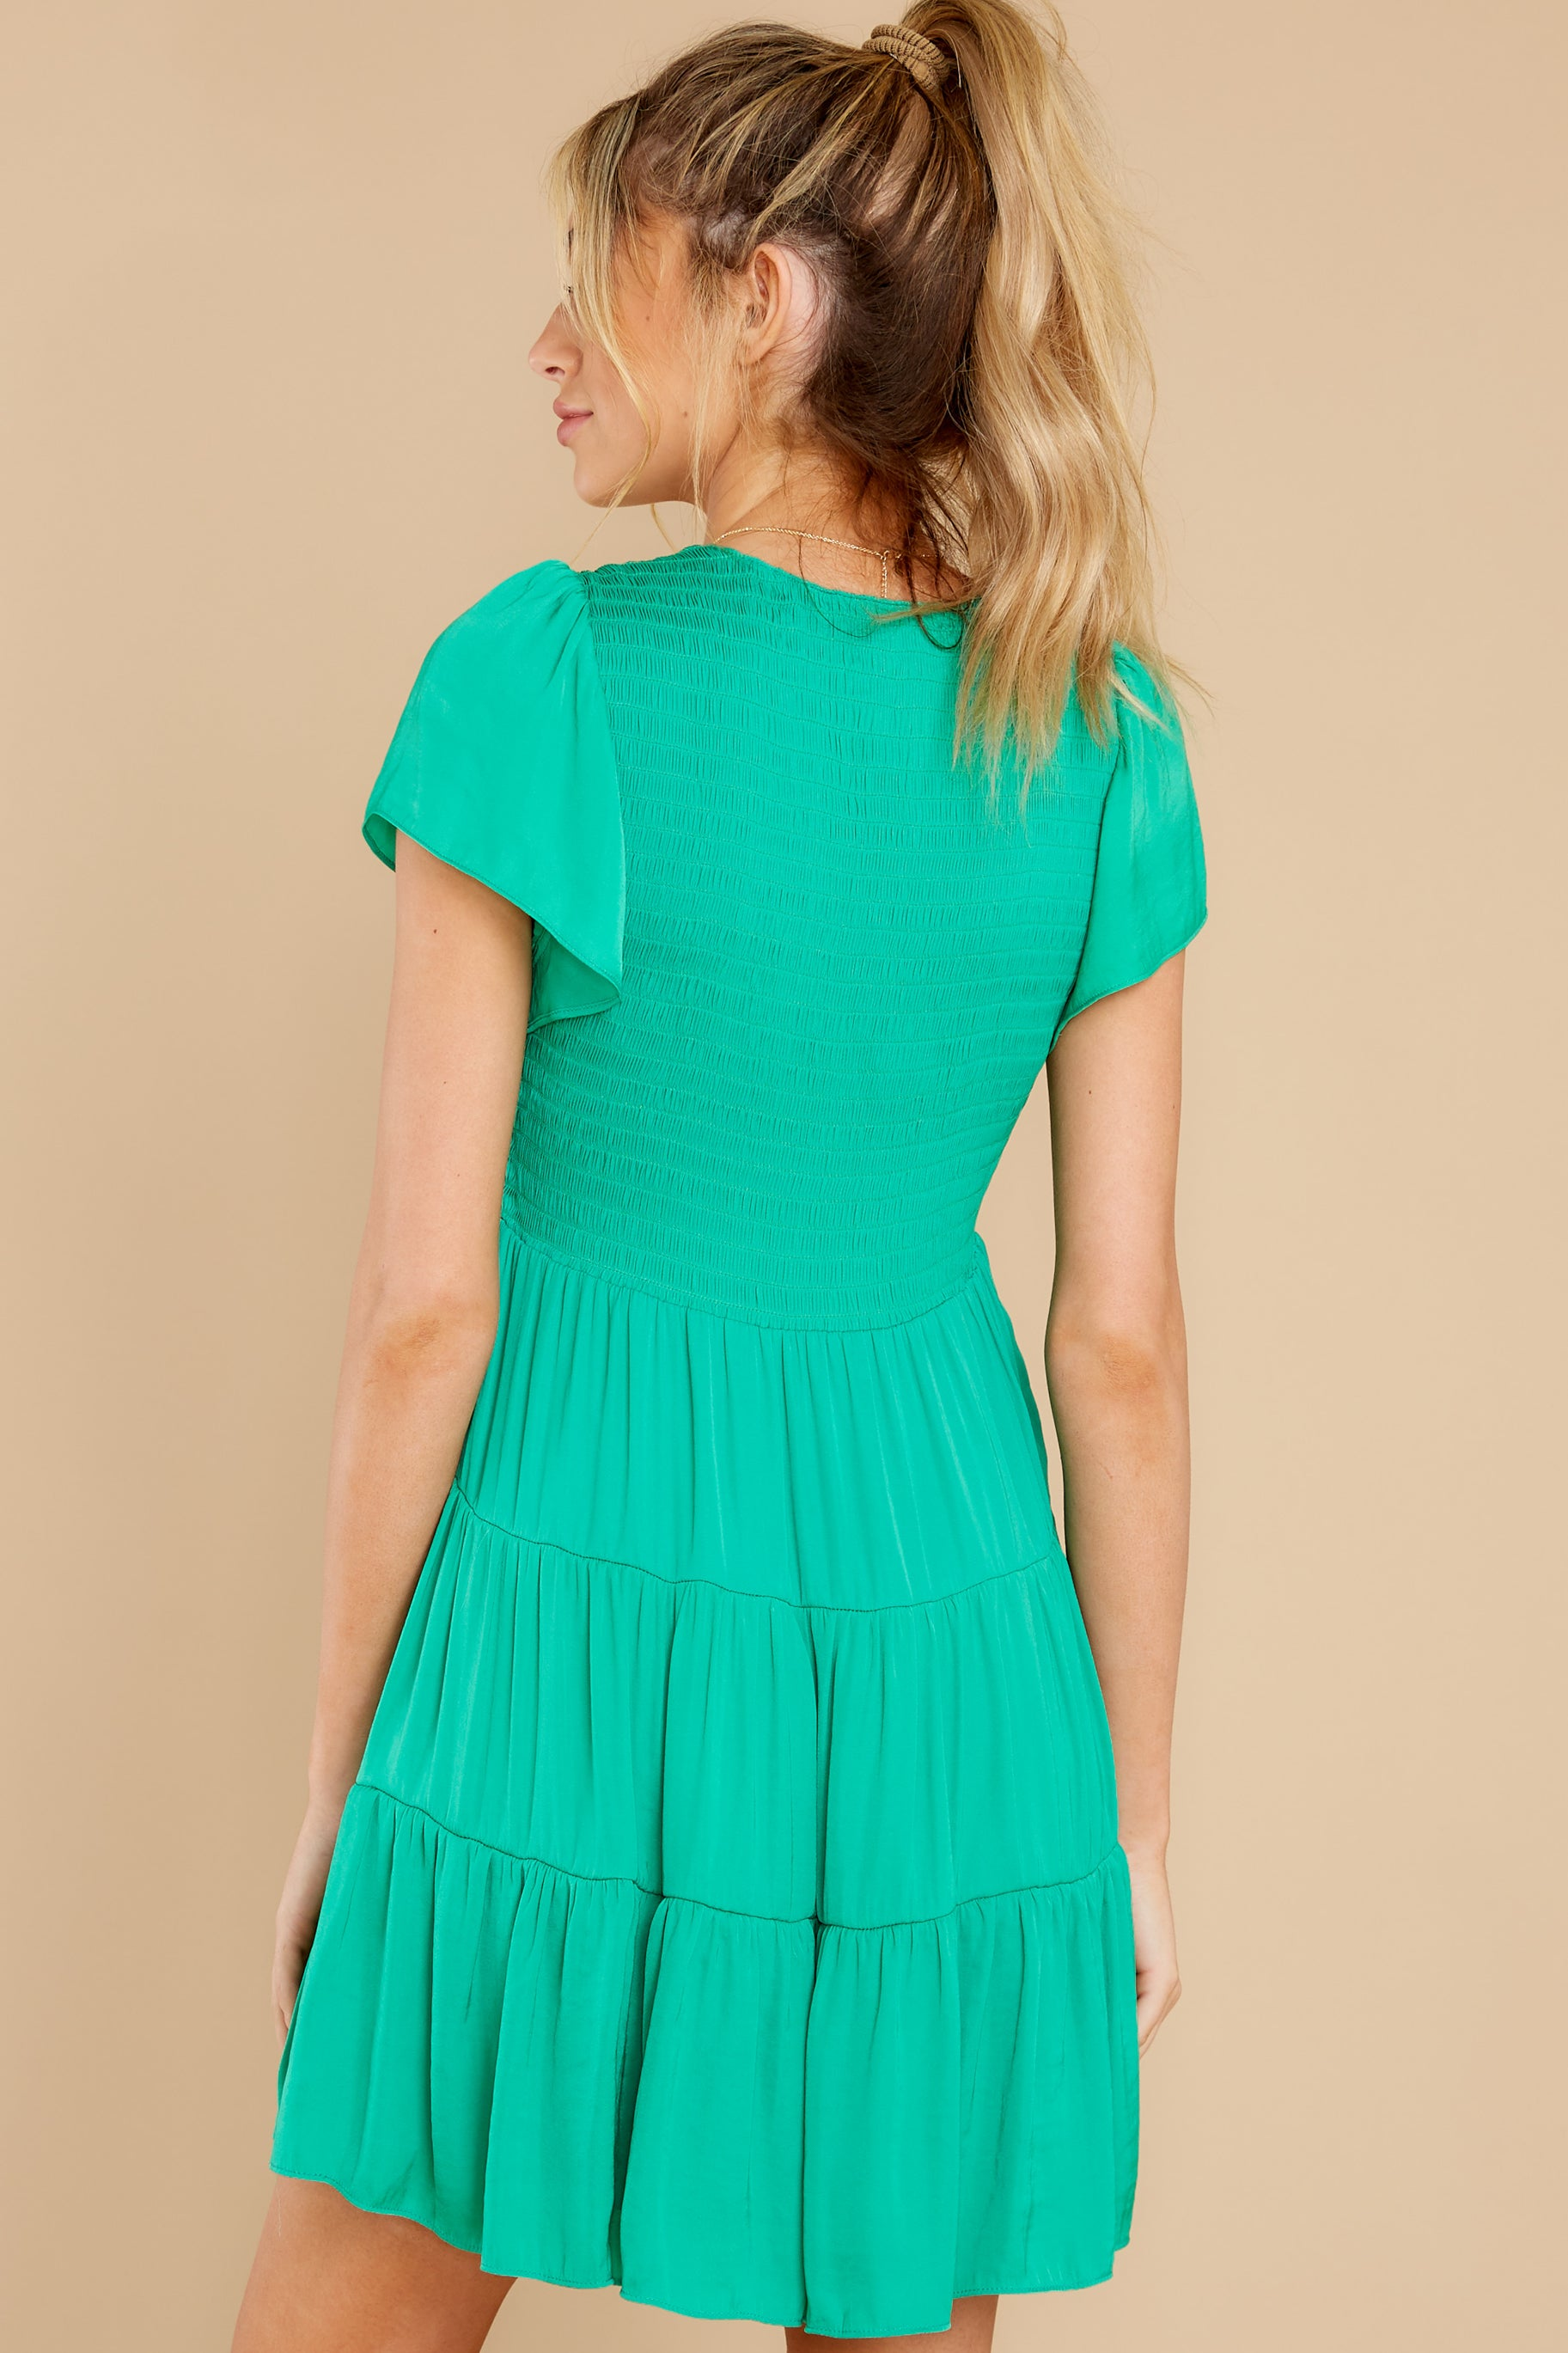 8 End Of The Night Jade Green Dress at reddress.com